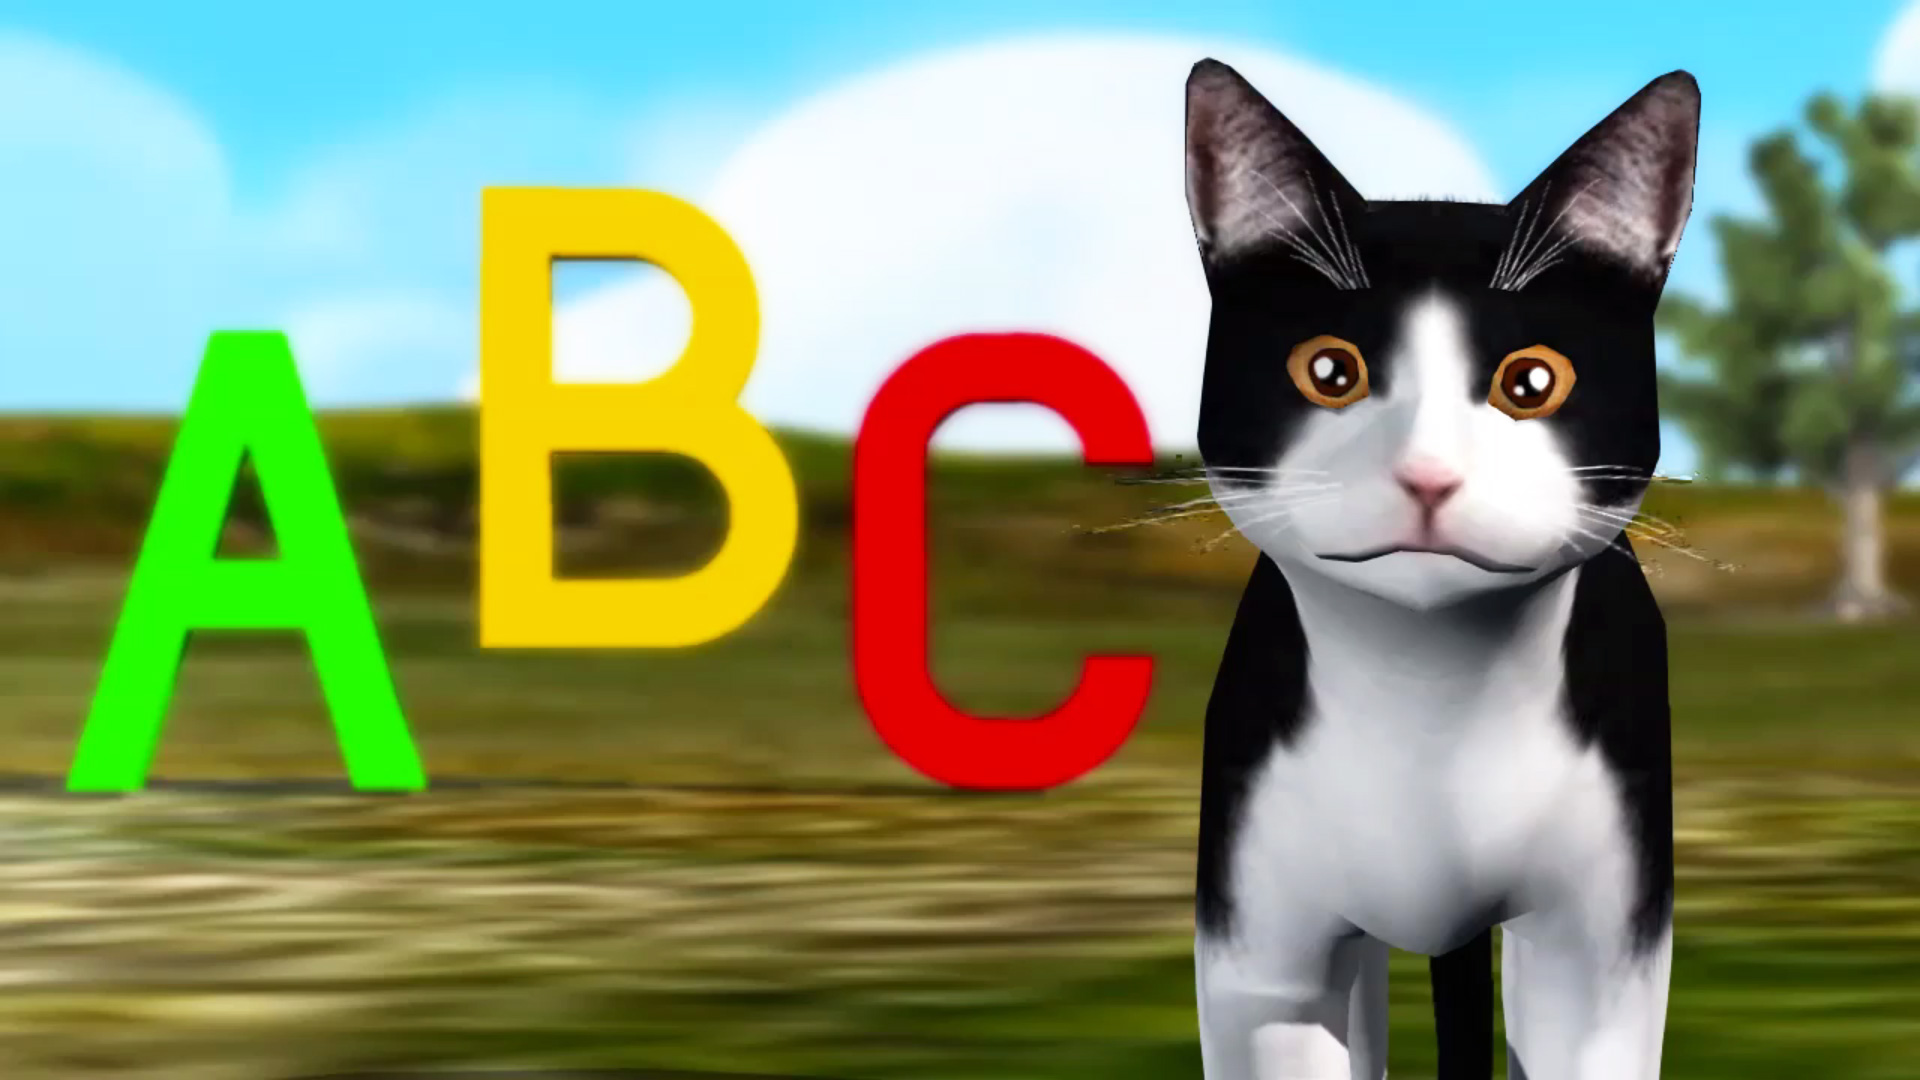 ABC song with Tommy the Cat